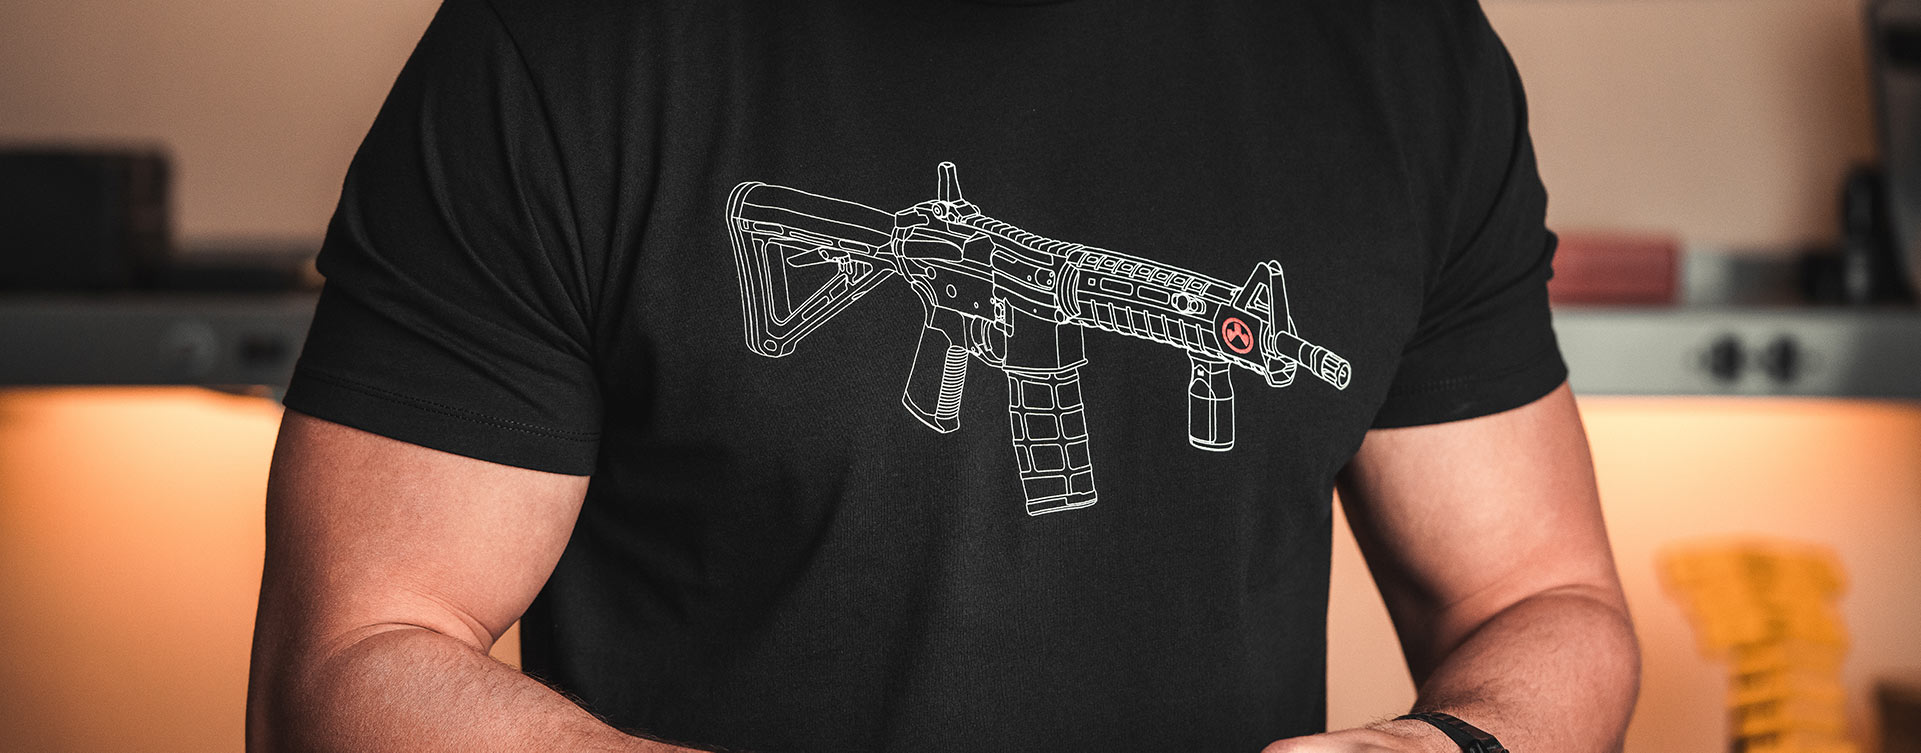 Magpul Blueprint Blend T-Shirt with line art graphic of AR15 with Magpul accessories on man working at workbench